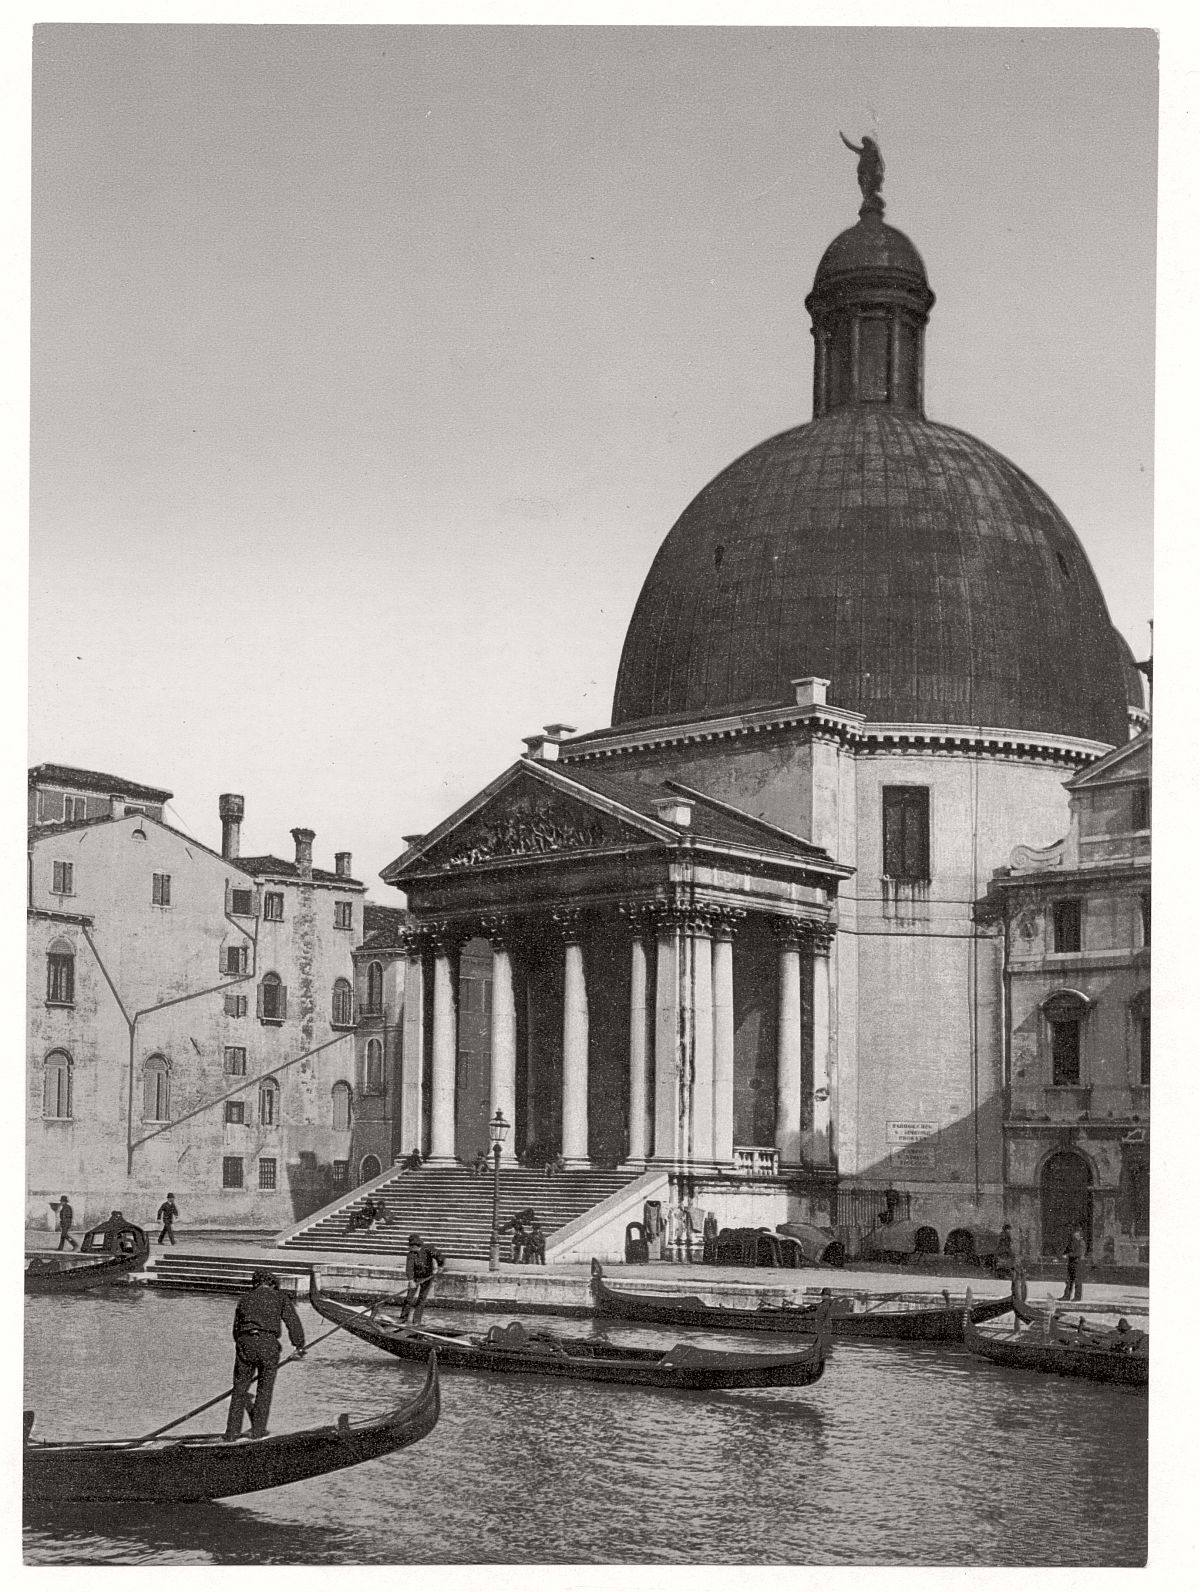 historic-bw-photos-of-venice-italy-in-19th-century-19